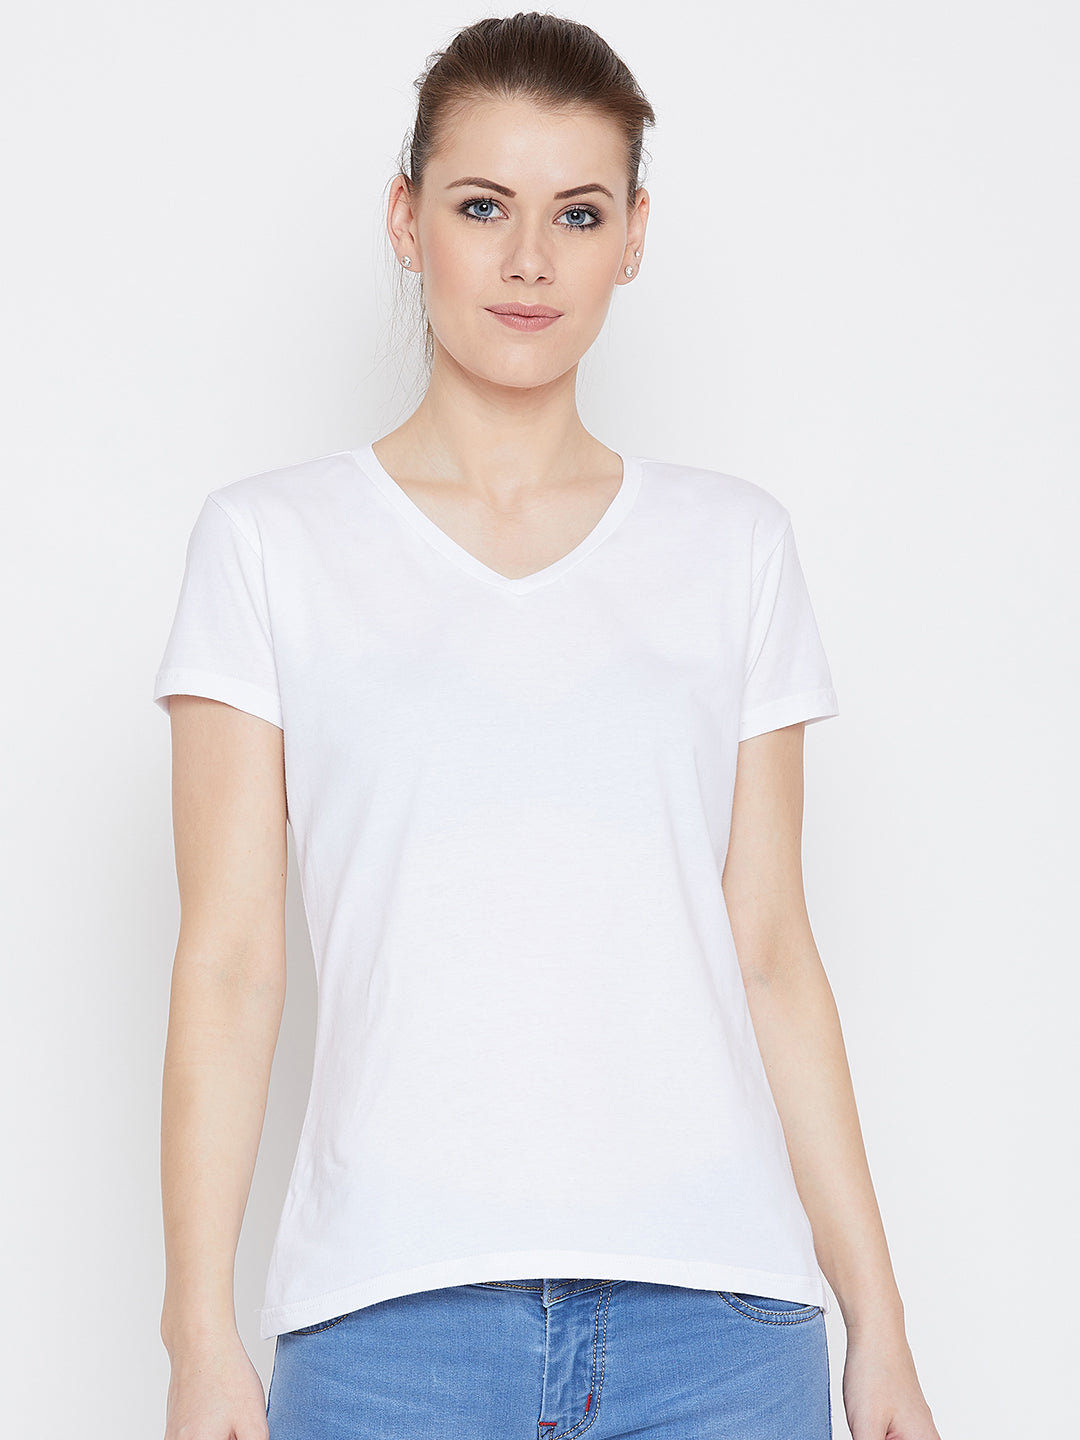 JUMP USA Women White Cotton Solid Casual V-Neck Neck Tshirt - JUMP USA